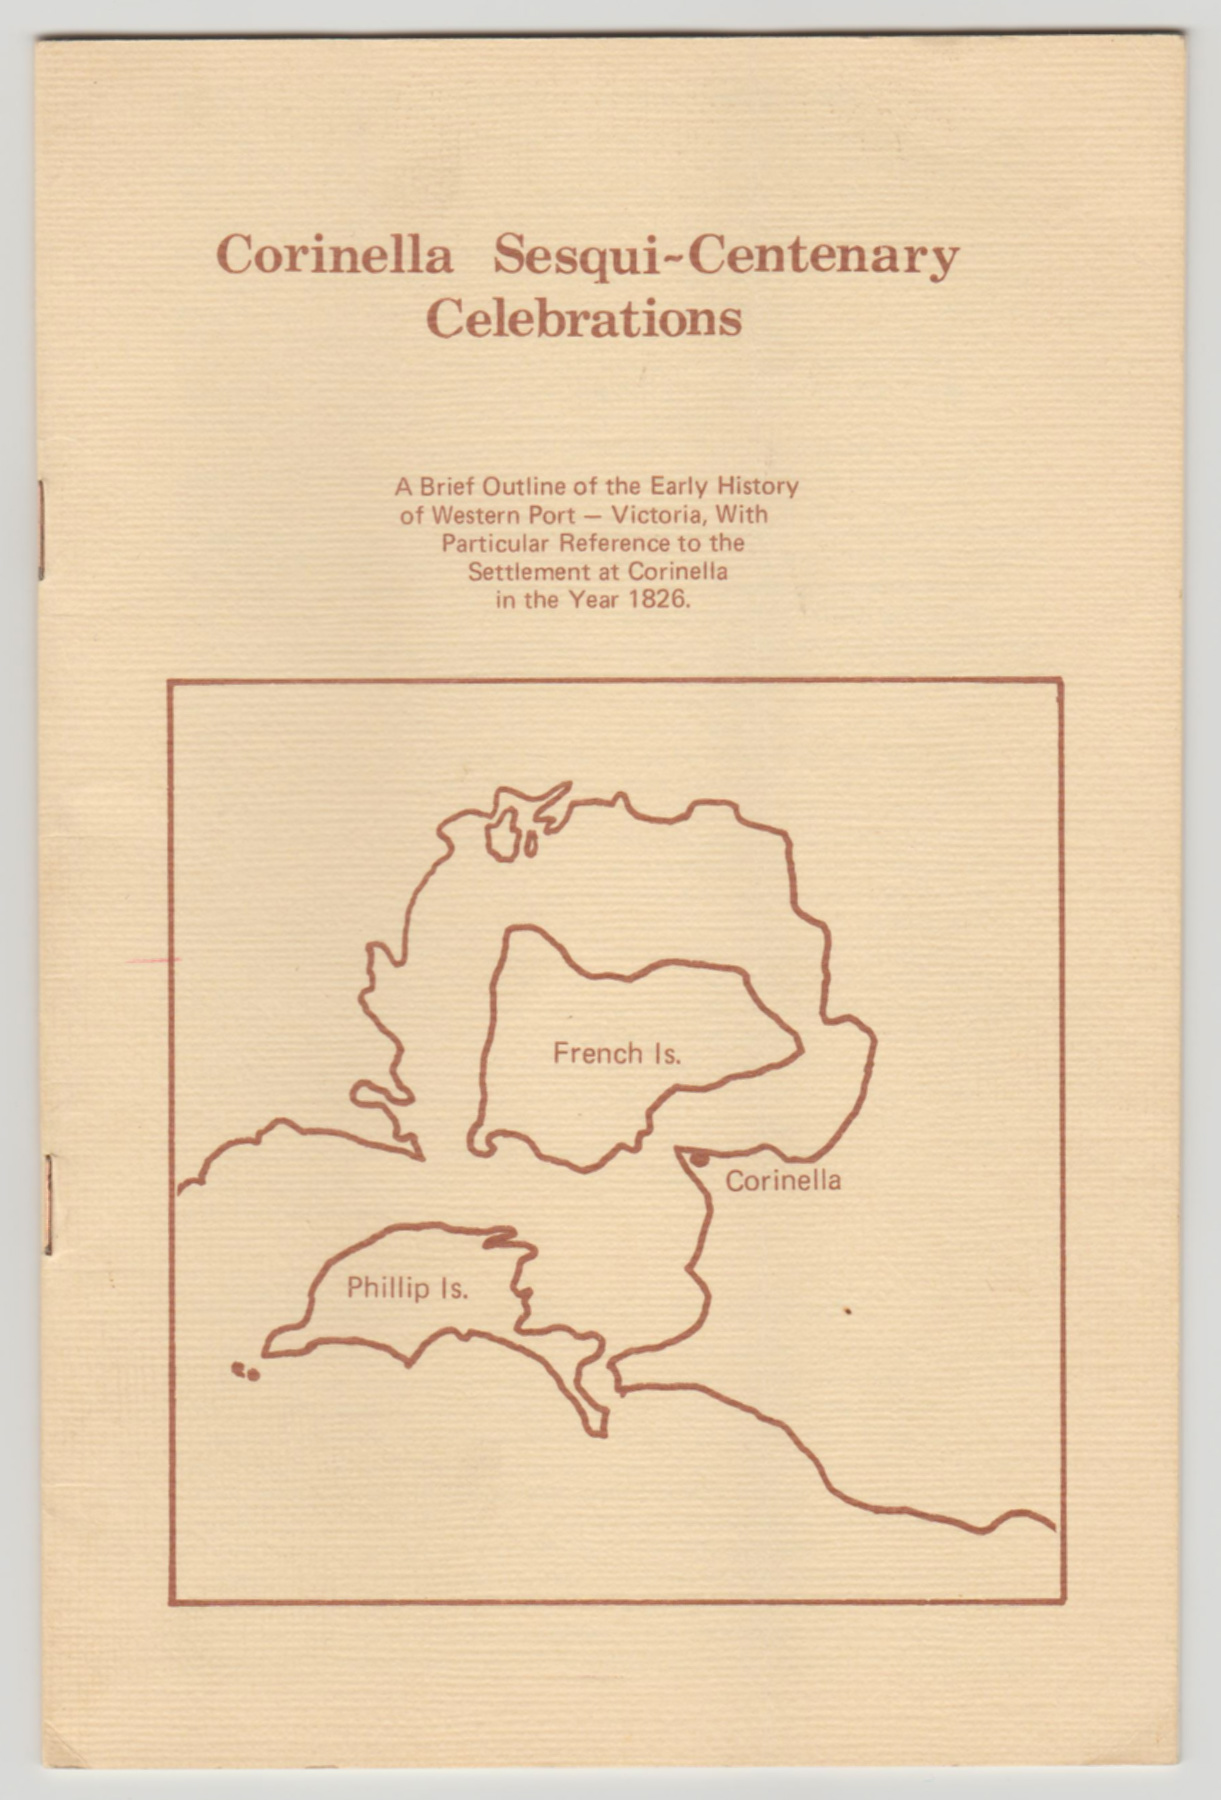 Image for CORINELLA SESQUI-CENTENARY CELEBRATIONS: A Brief Outline of the Early History of Western Port, Victoria with Particular Reference to the Settlement at Corinella in the Year 1826